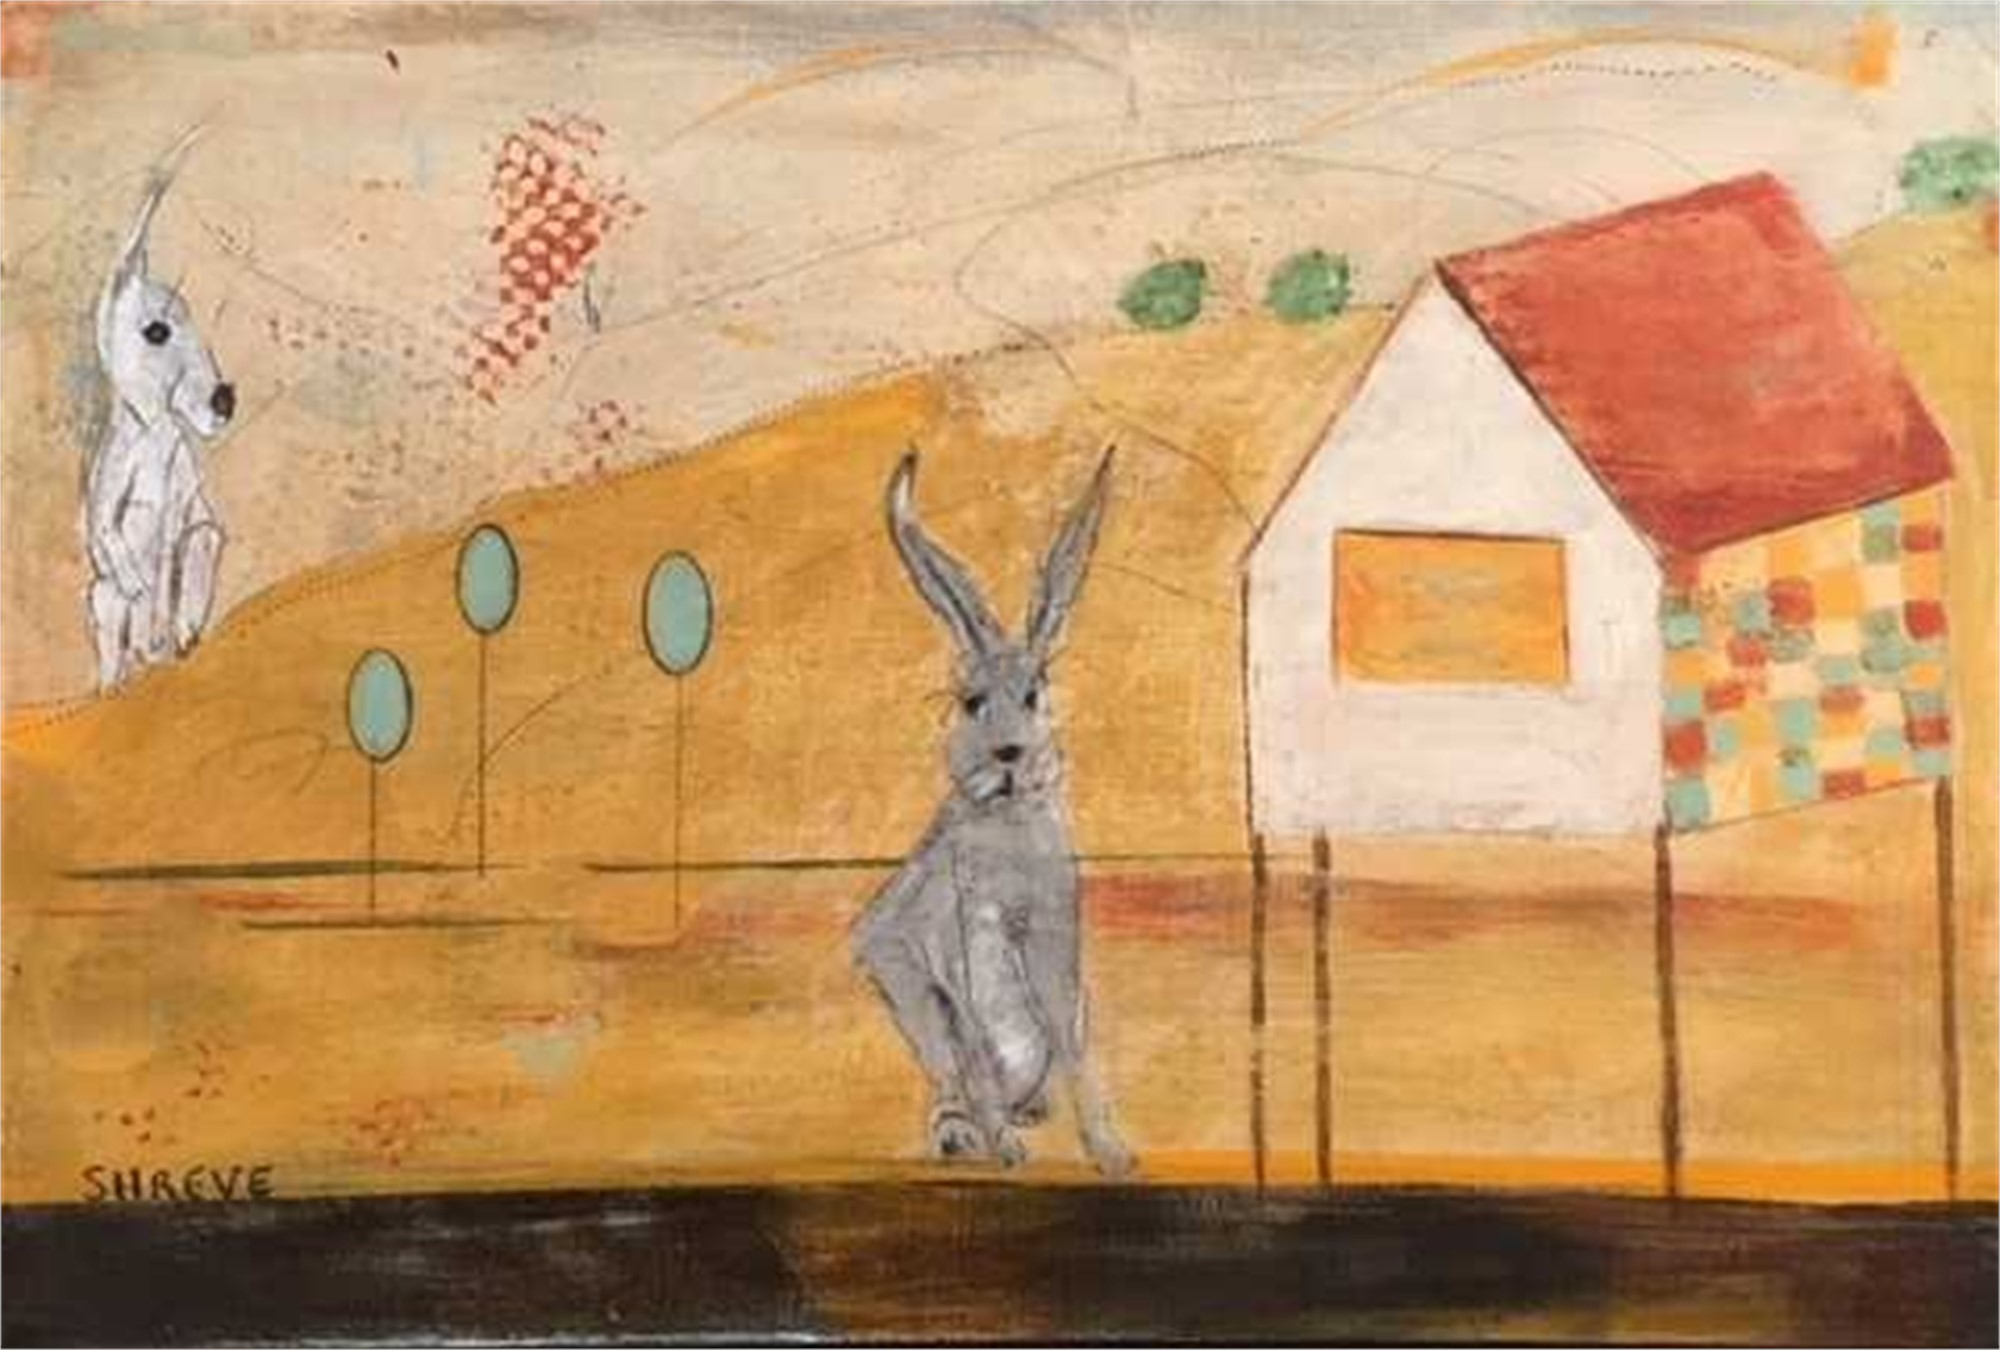 The Hare House by Judy Shreve